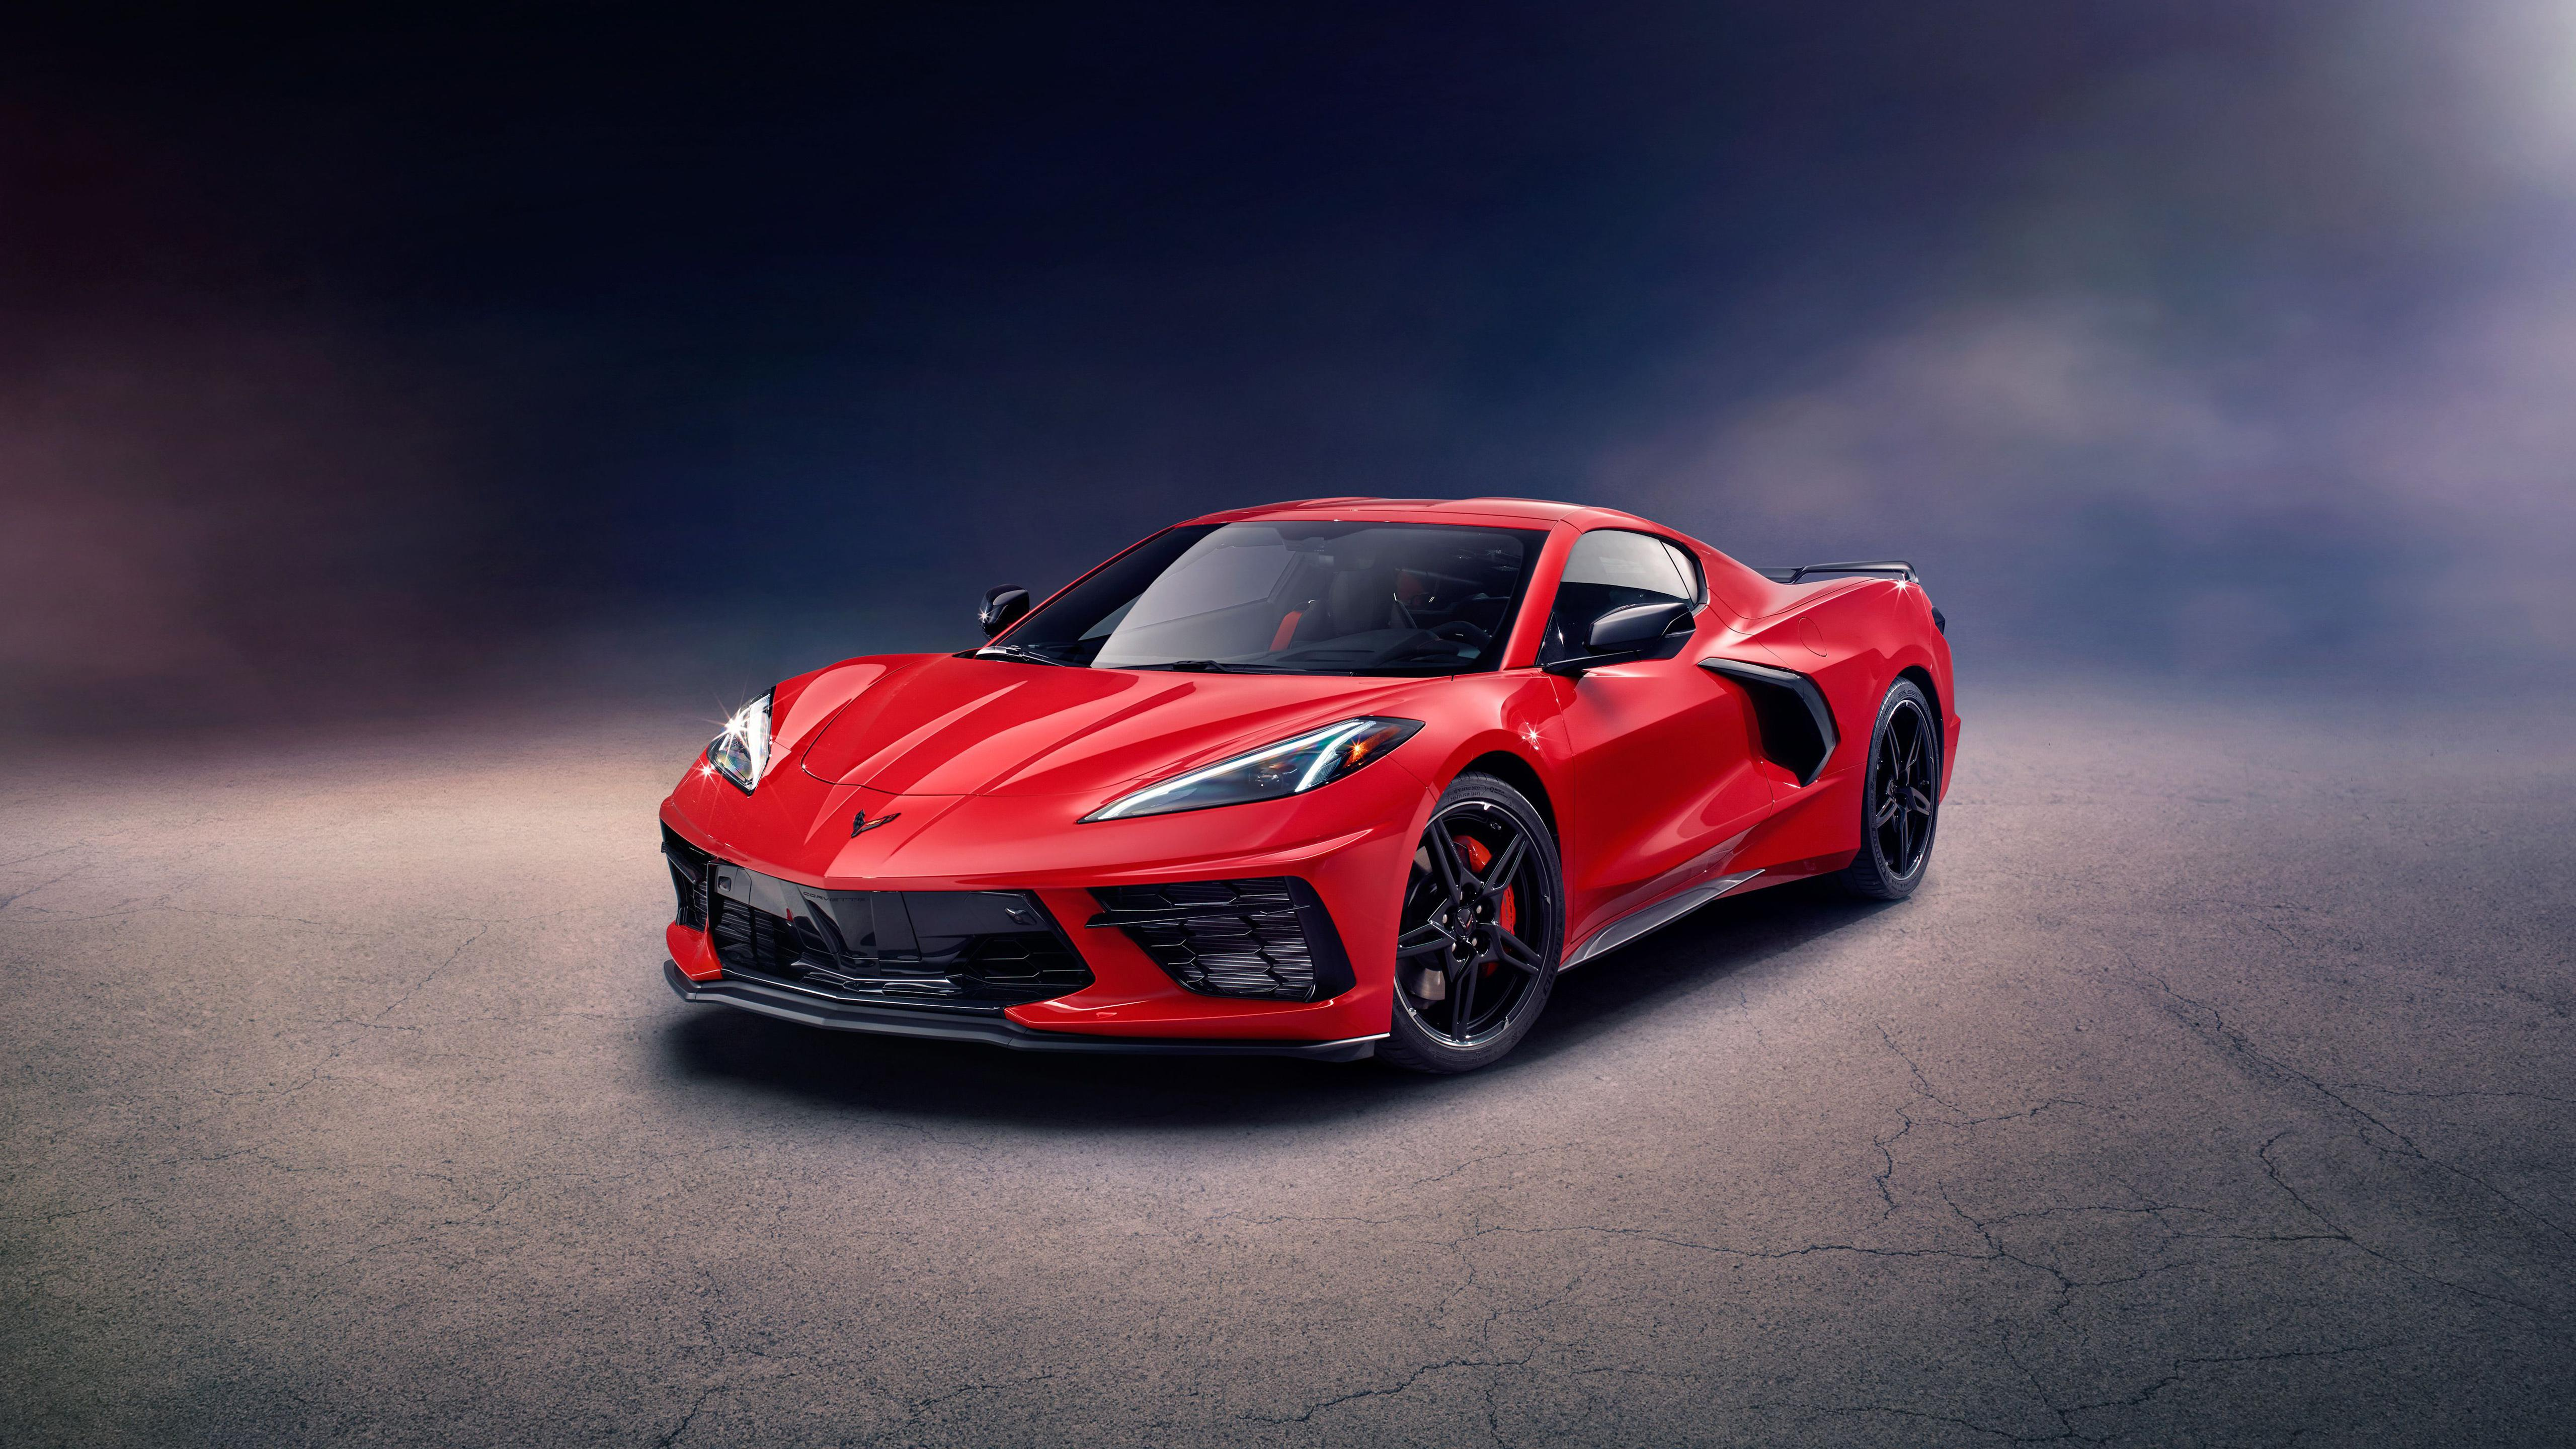 2020 Chevrolet Corvette Stingray Z51 Supercar Wallpapers 5120x2880